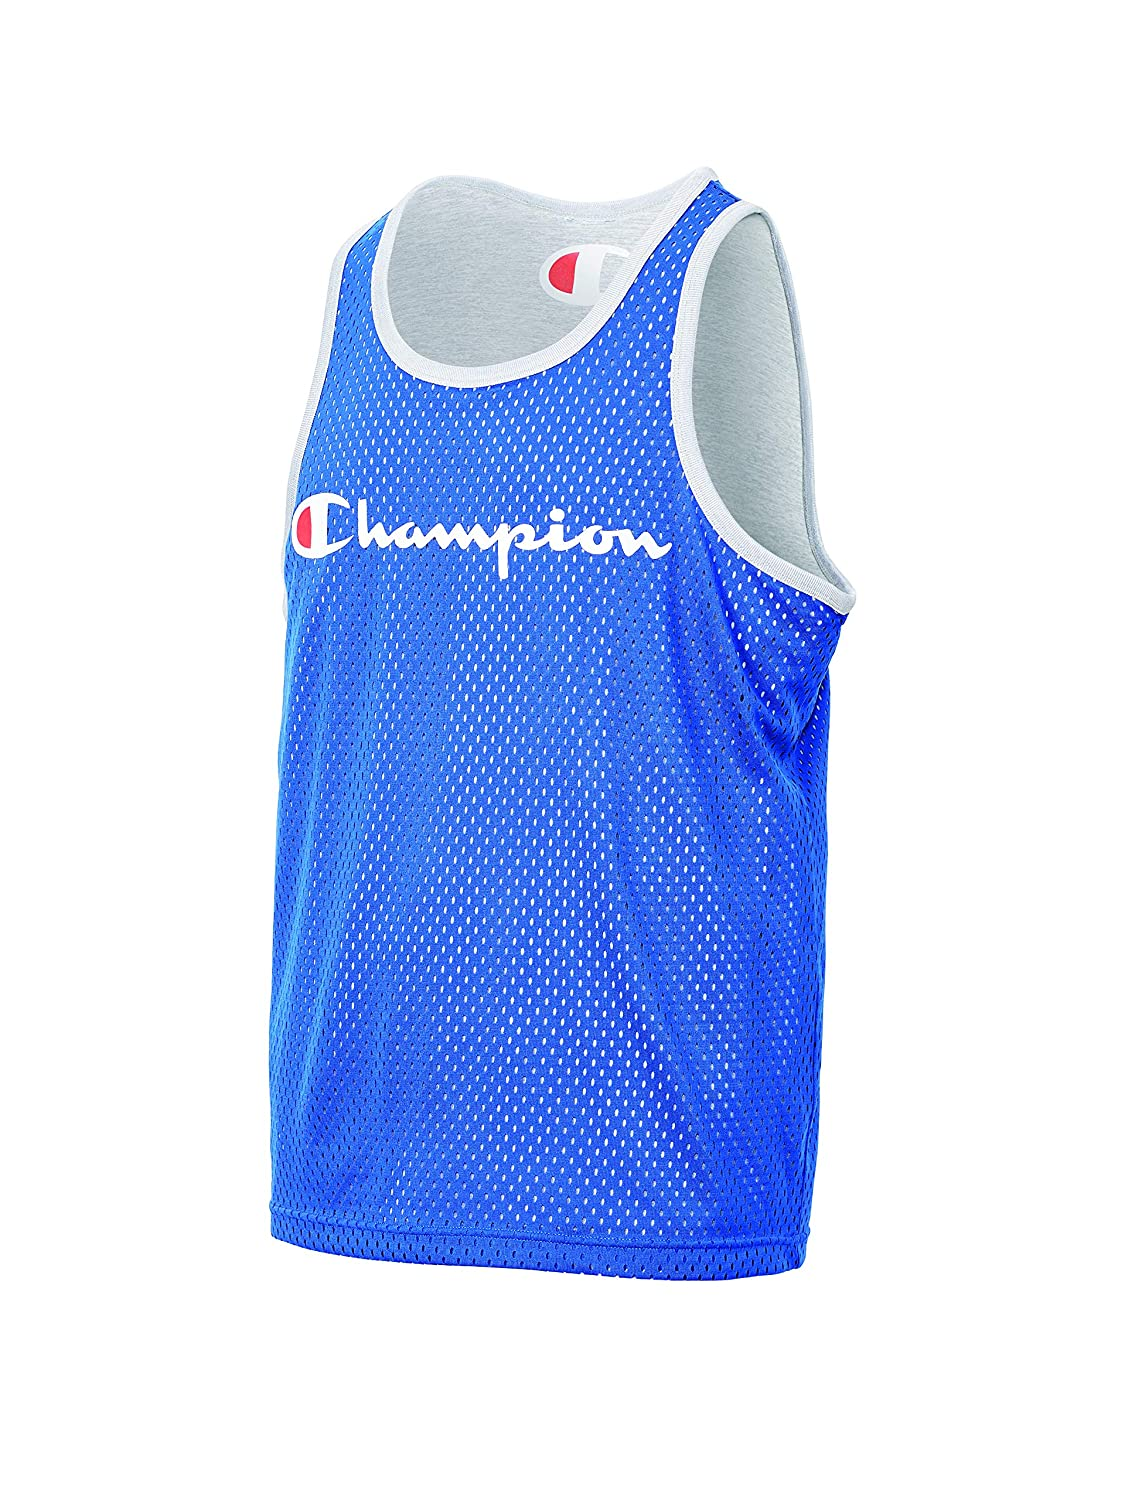 2446922dcbf3 Amazon.com  Champion Men s Reversible Mesh Tank  Clothing